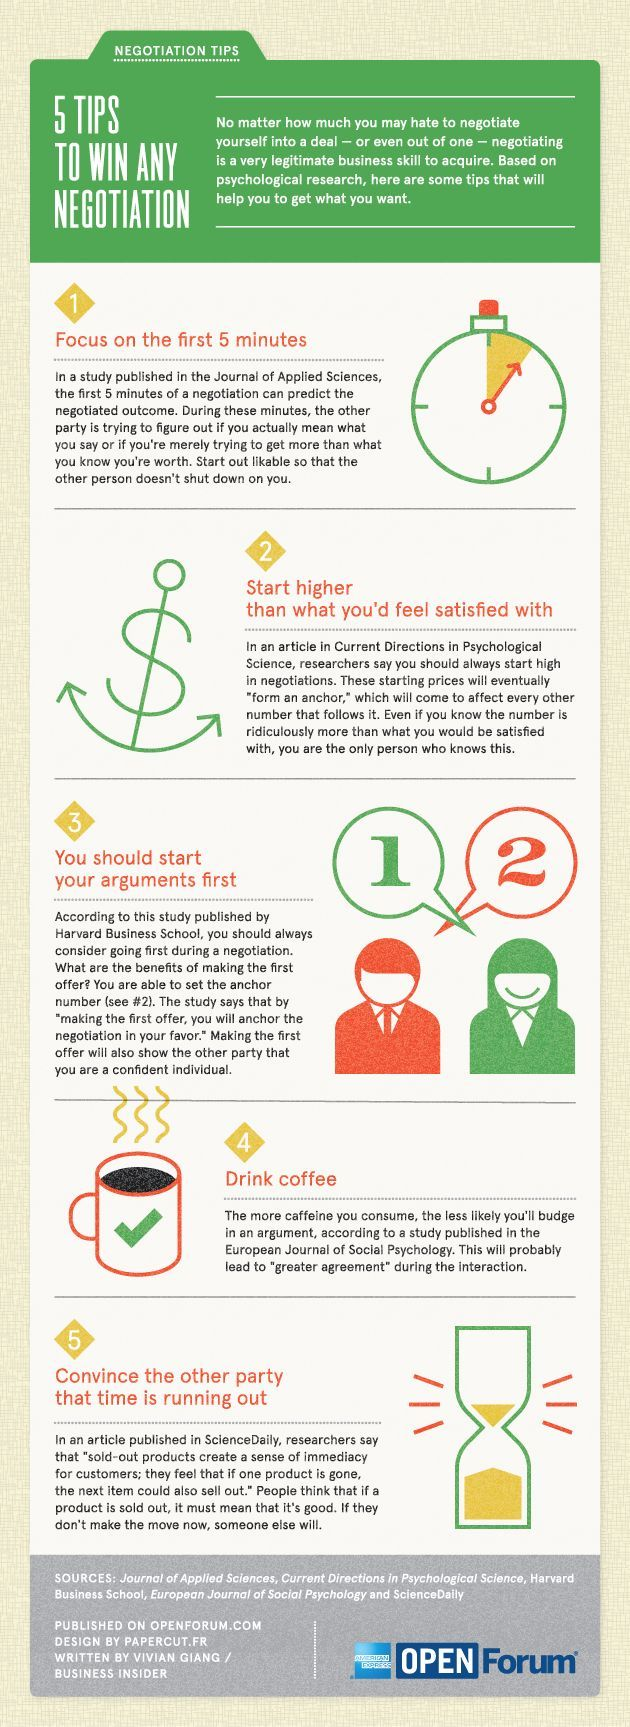 5 Tips to Win Any Negotiation 5 Types of Business Negotiation Strategies that Work